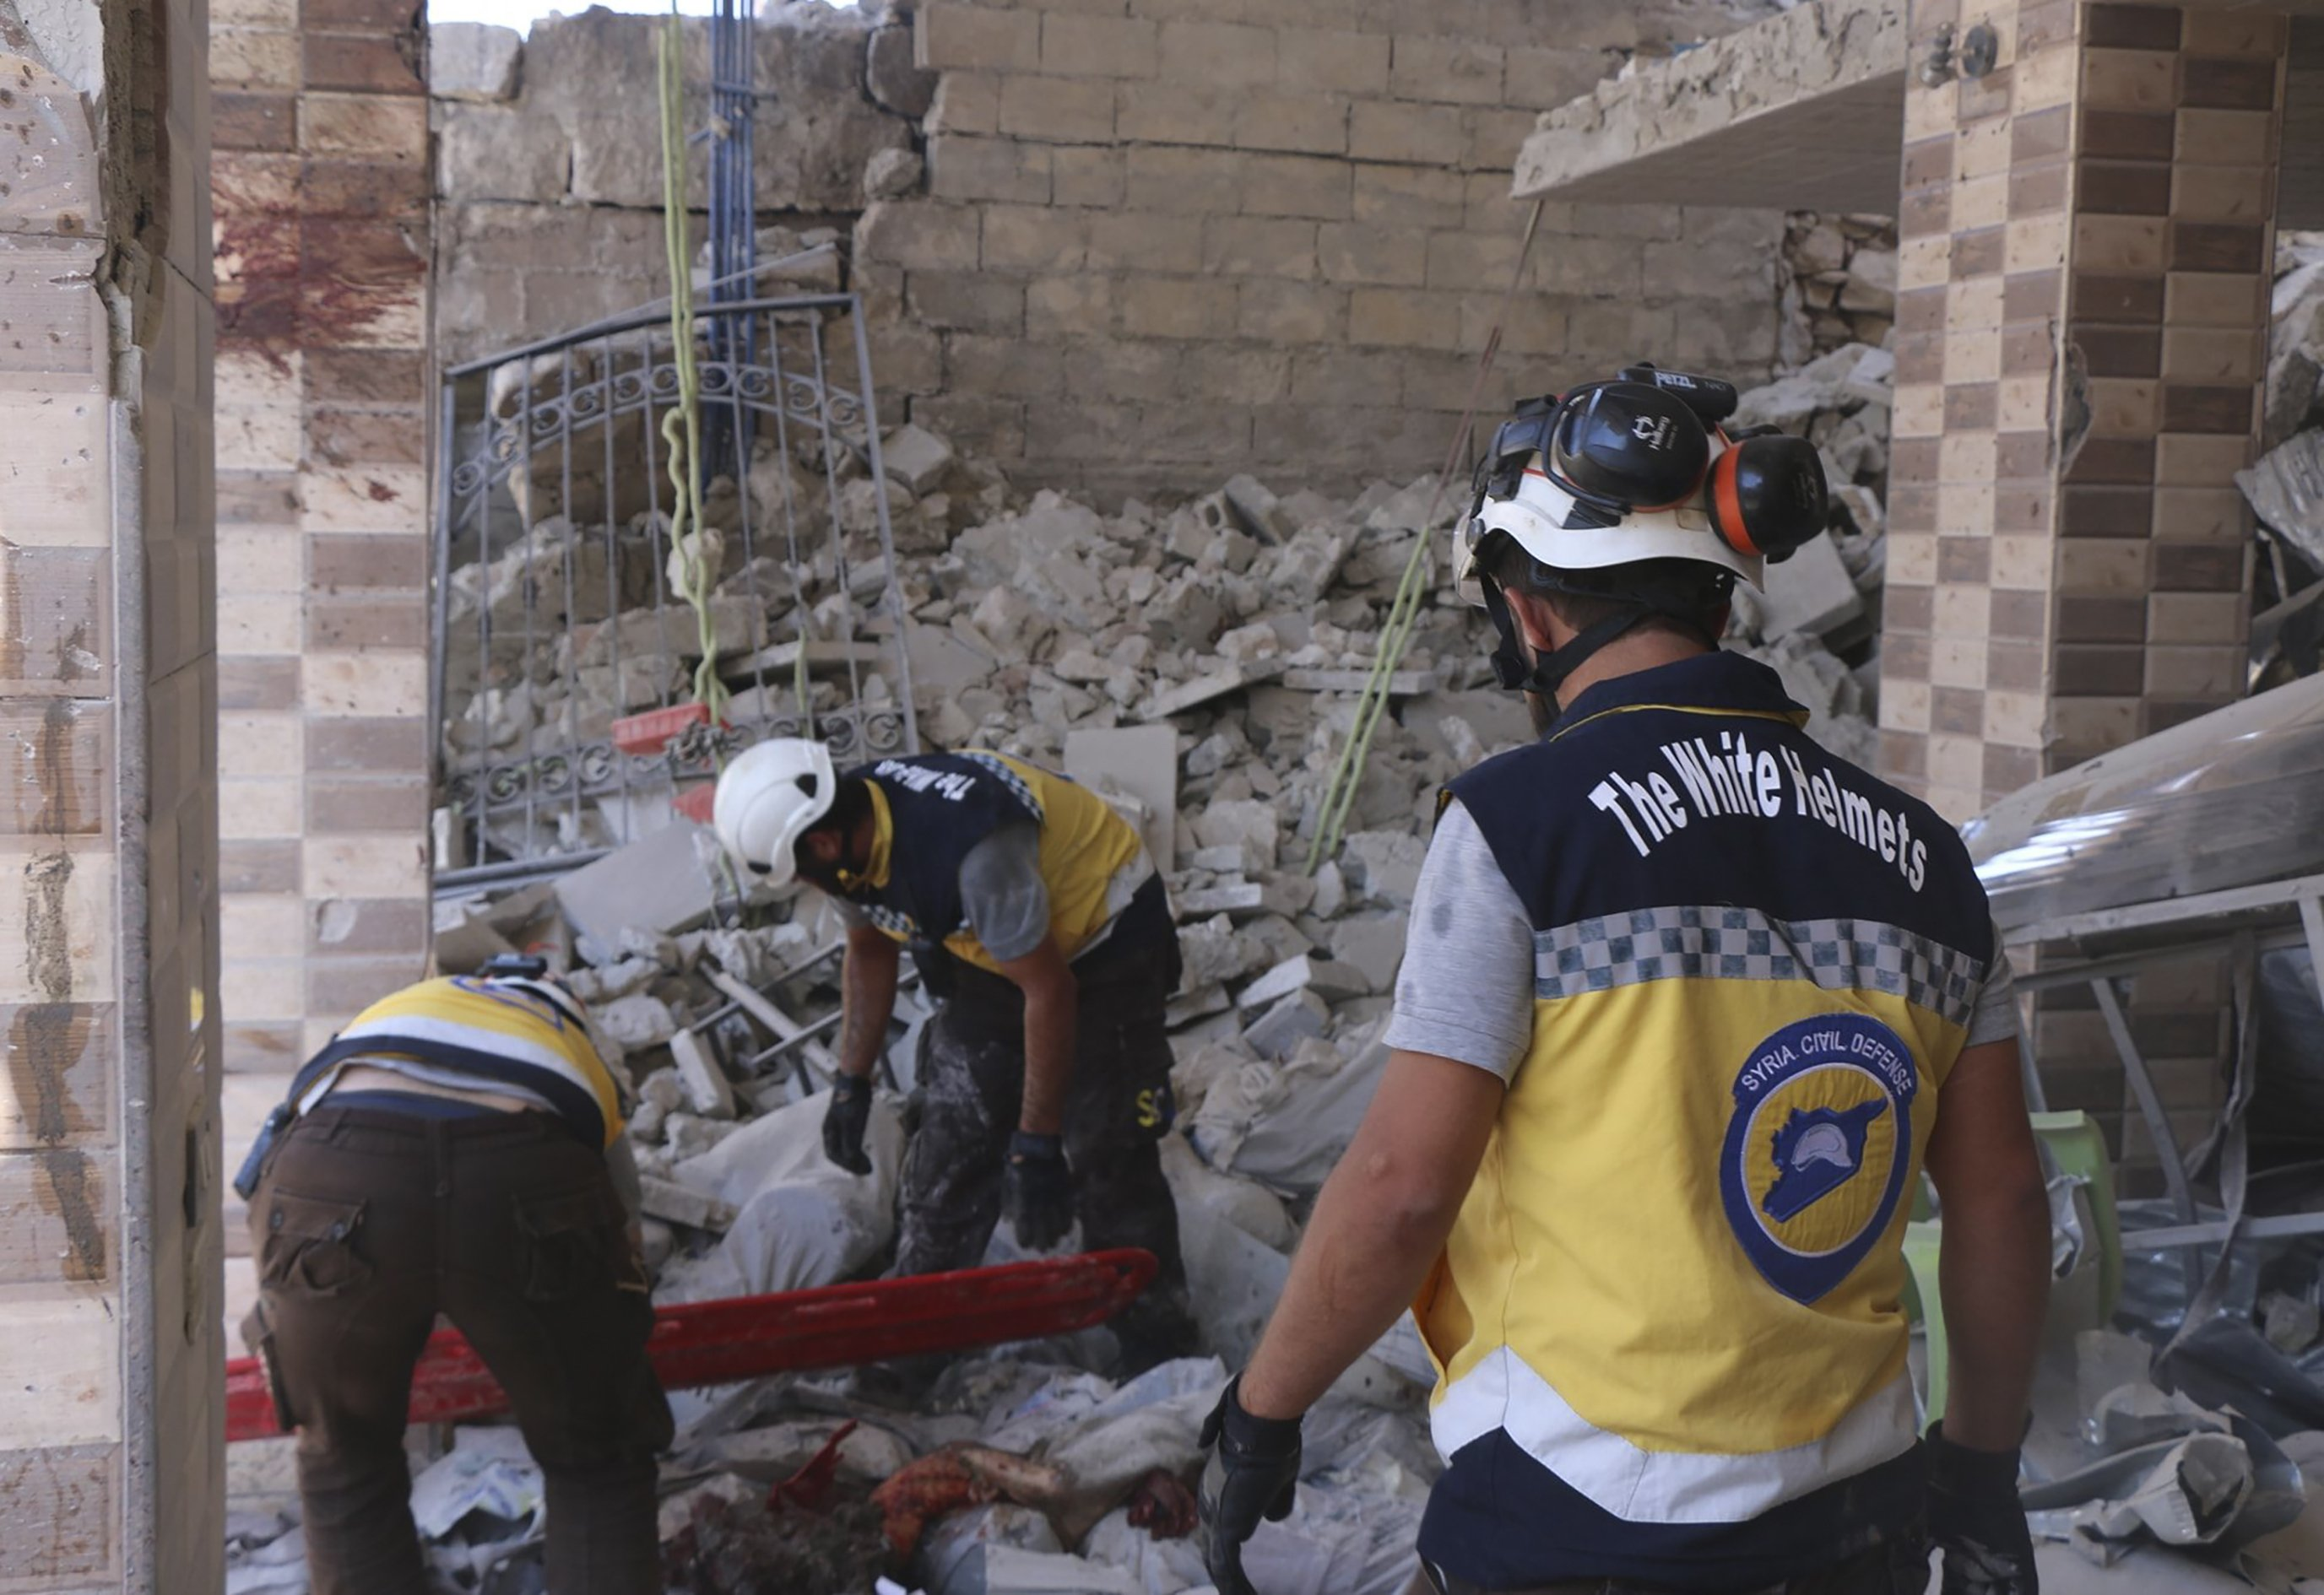 Syrian activists say airstrikes kill 27 in rebel-held town